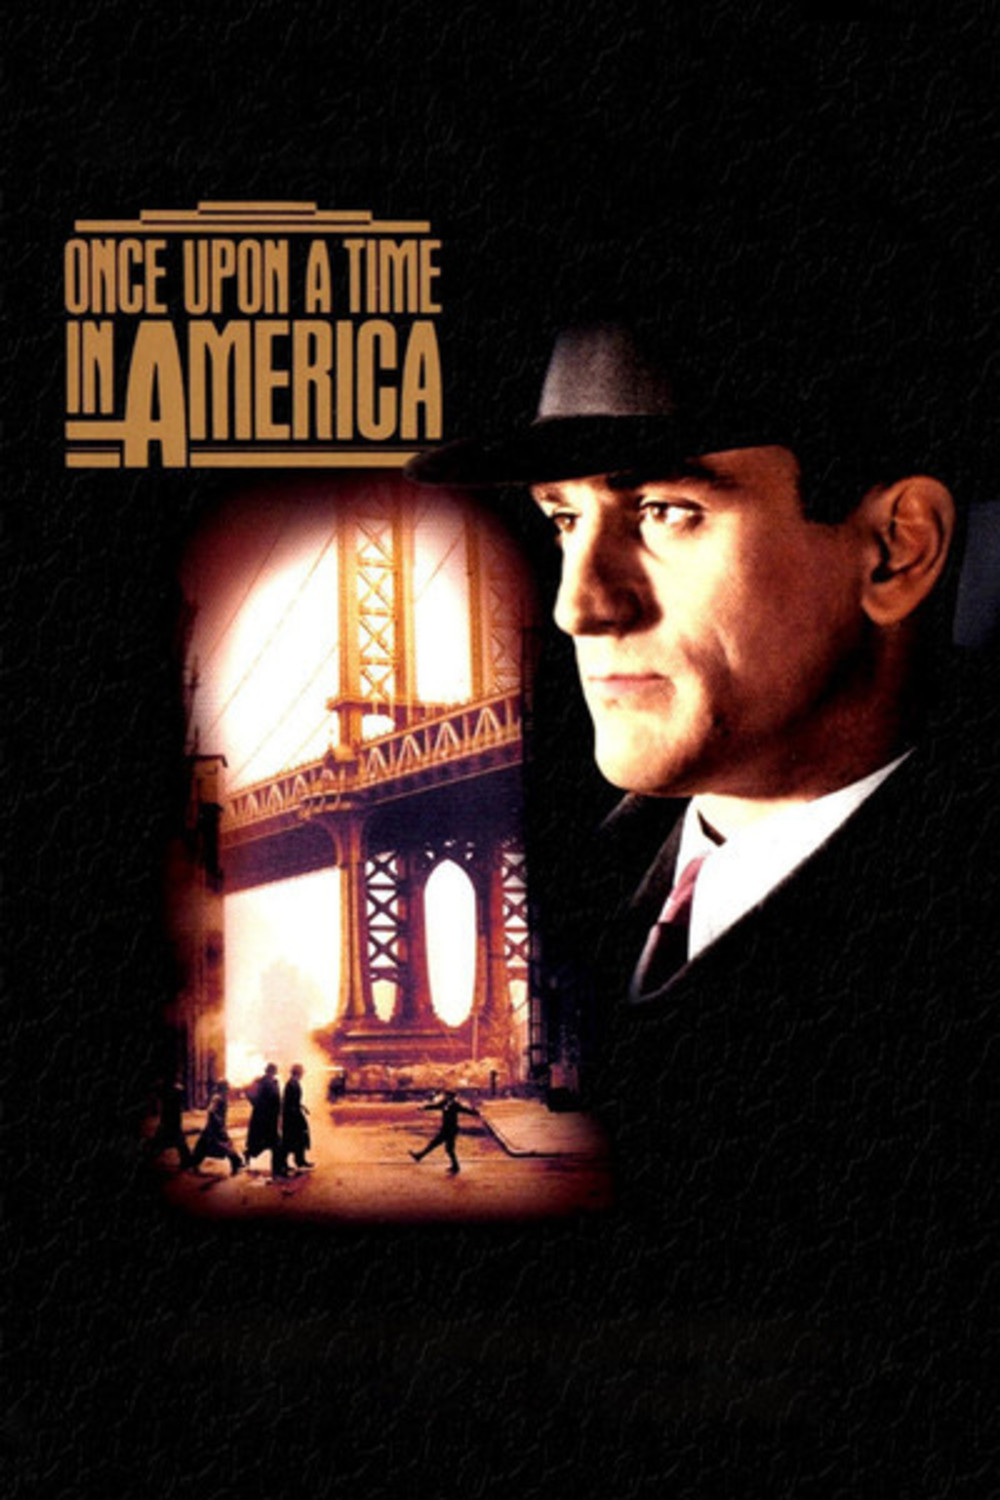 REEL CLASSICS: Once Upon a Time in America (1984) – Part 1